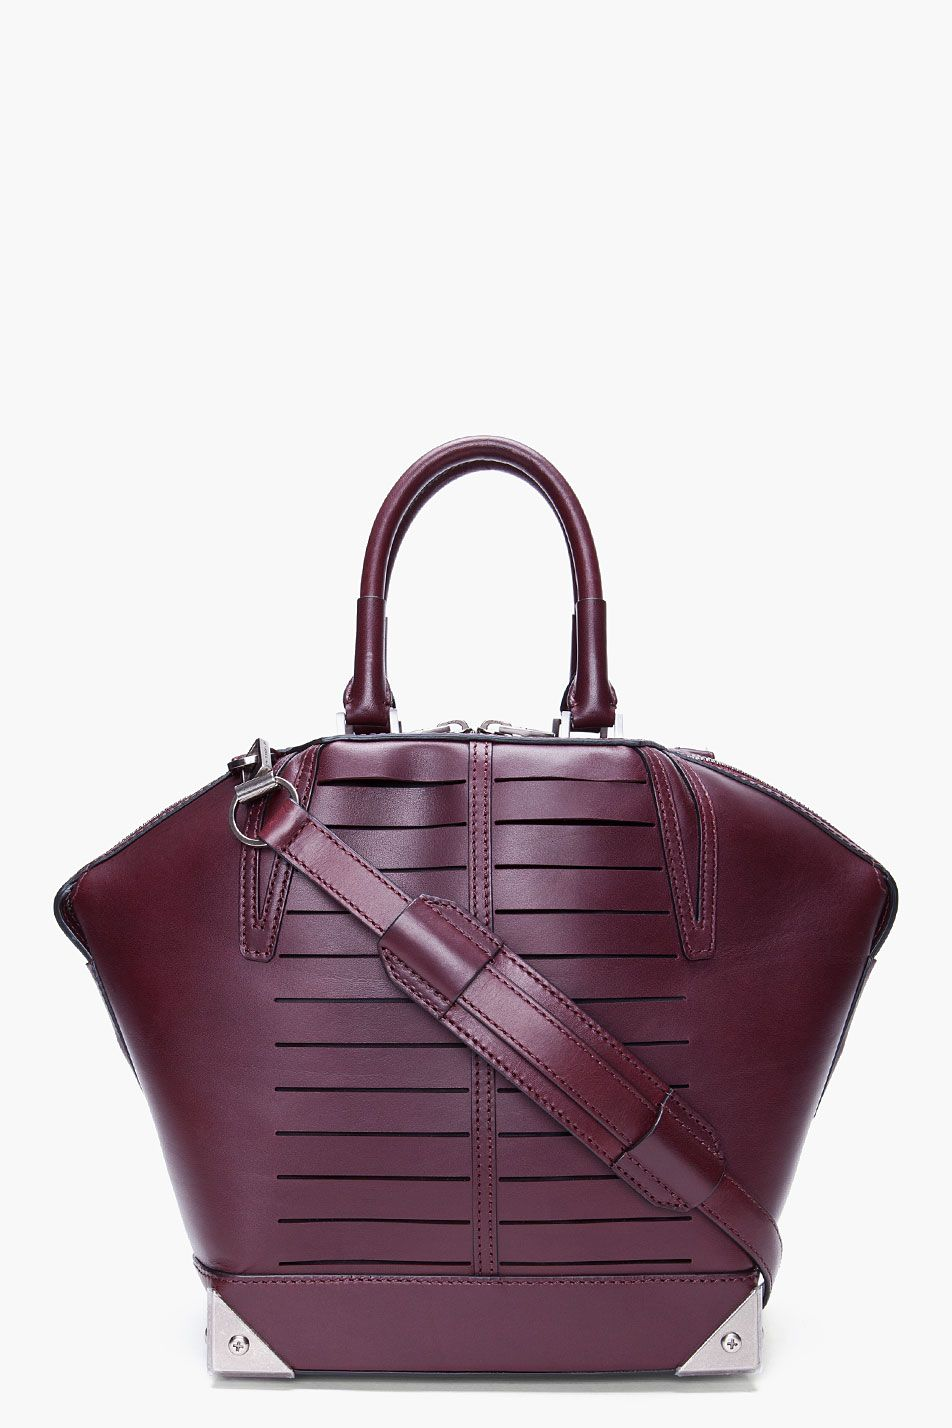 085dd0738ae0 Women s Red Small Burgundy Emile Tote in 2019